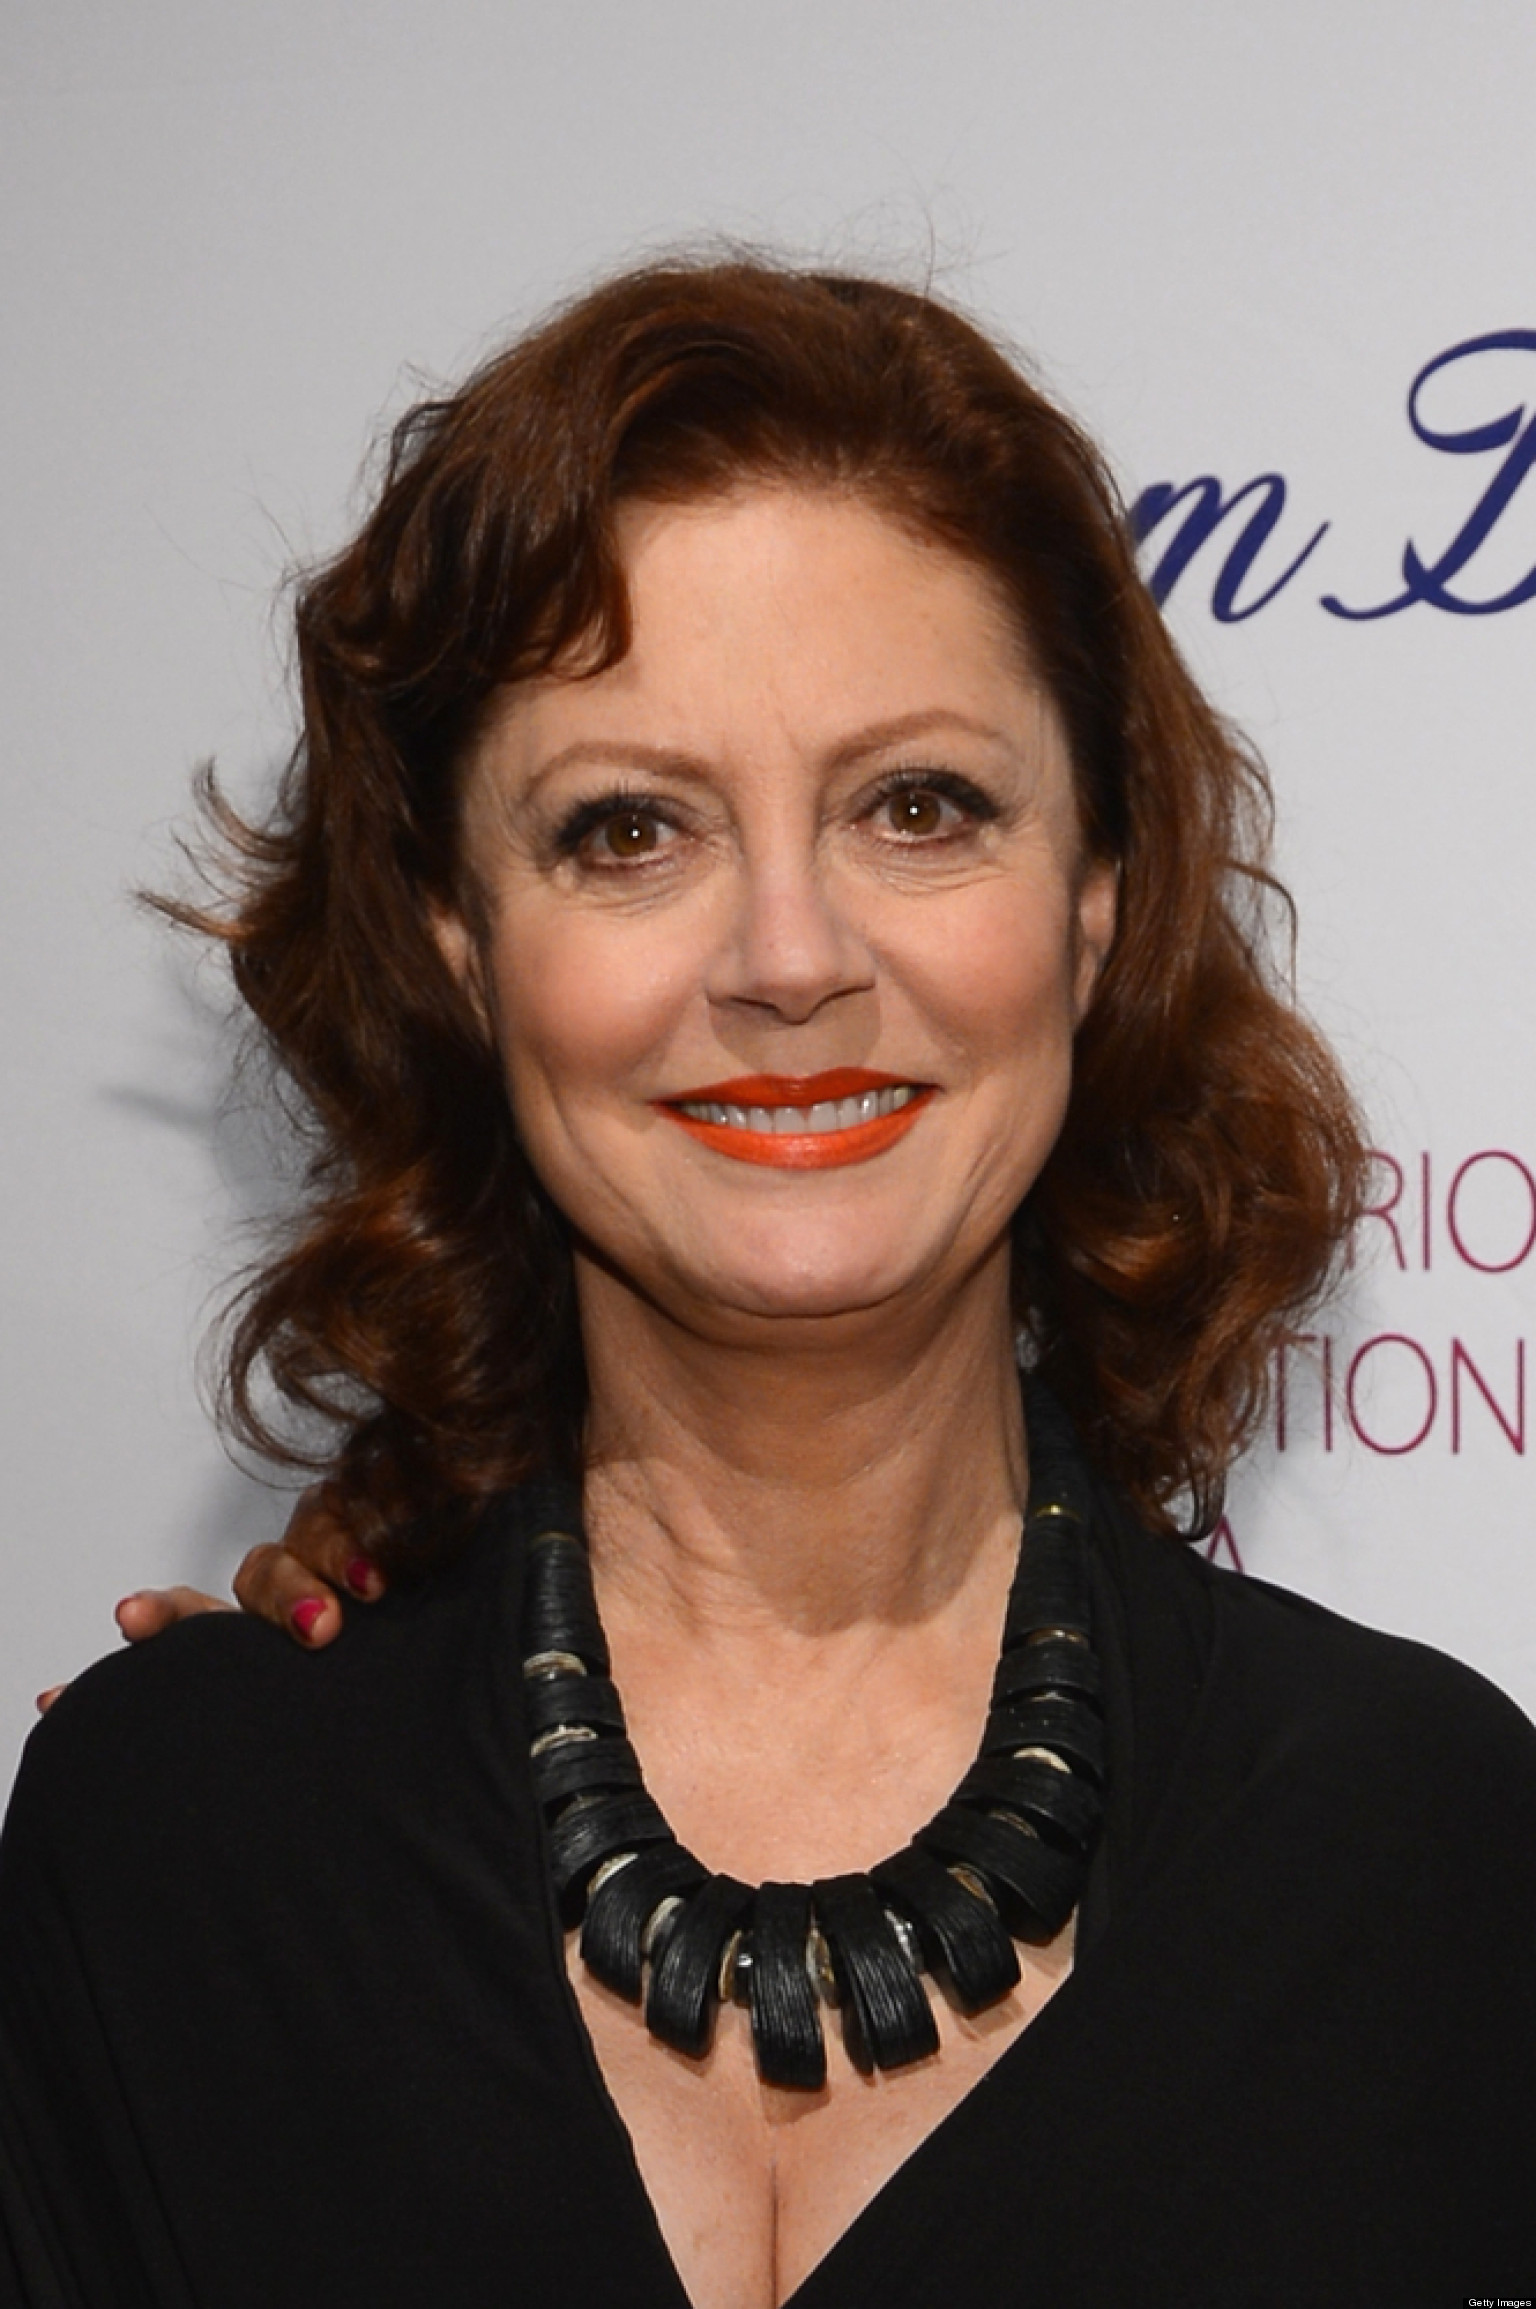 Susan Sarandon Married Life Is Difficult Huffpost